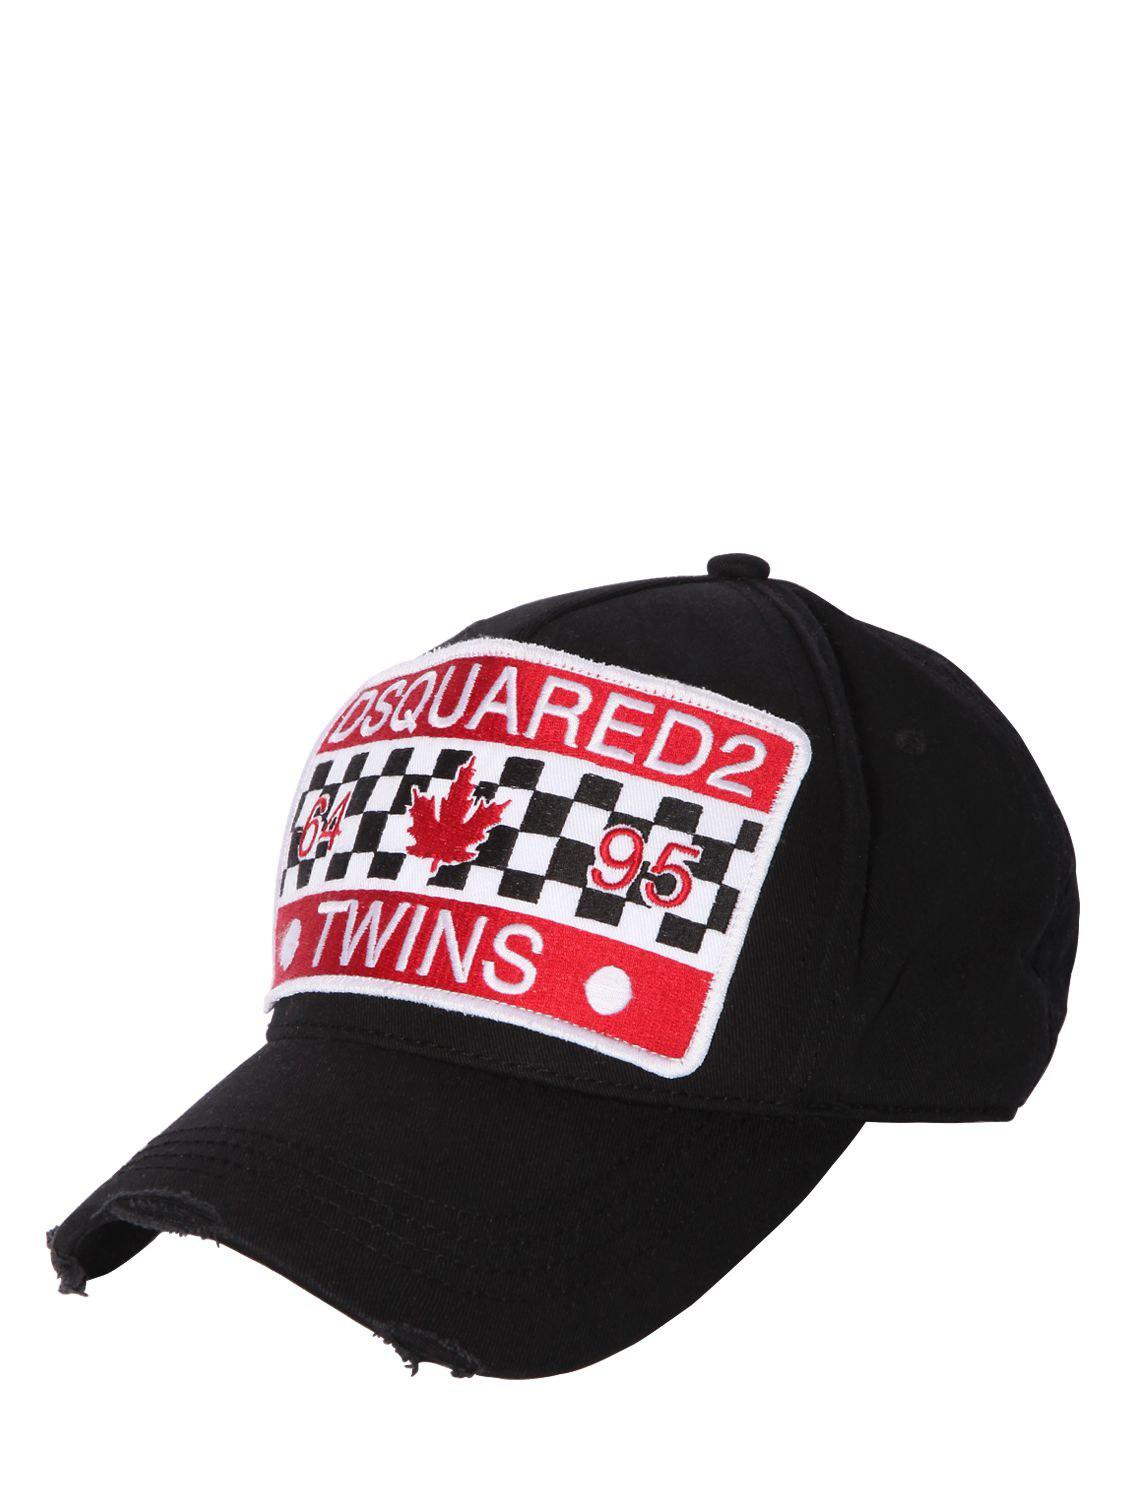 Dsquared² Twins Patch Canvas Baseball Cap in Black for Men - Lyst 2e234bb14b0